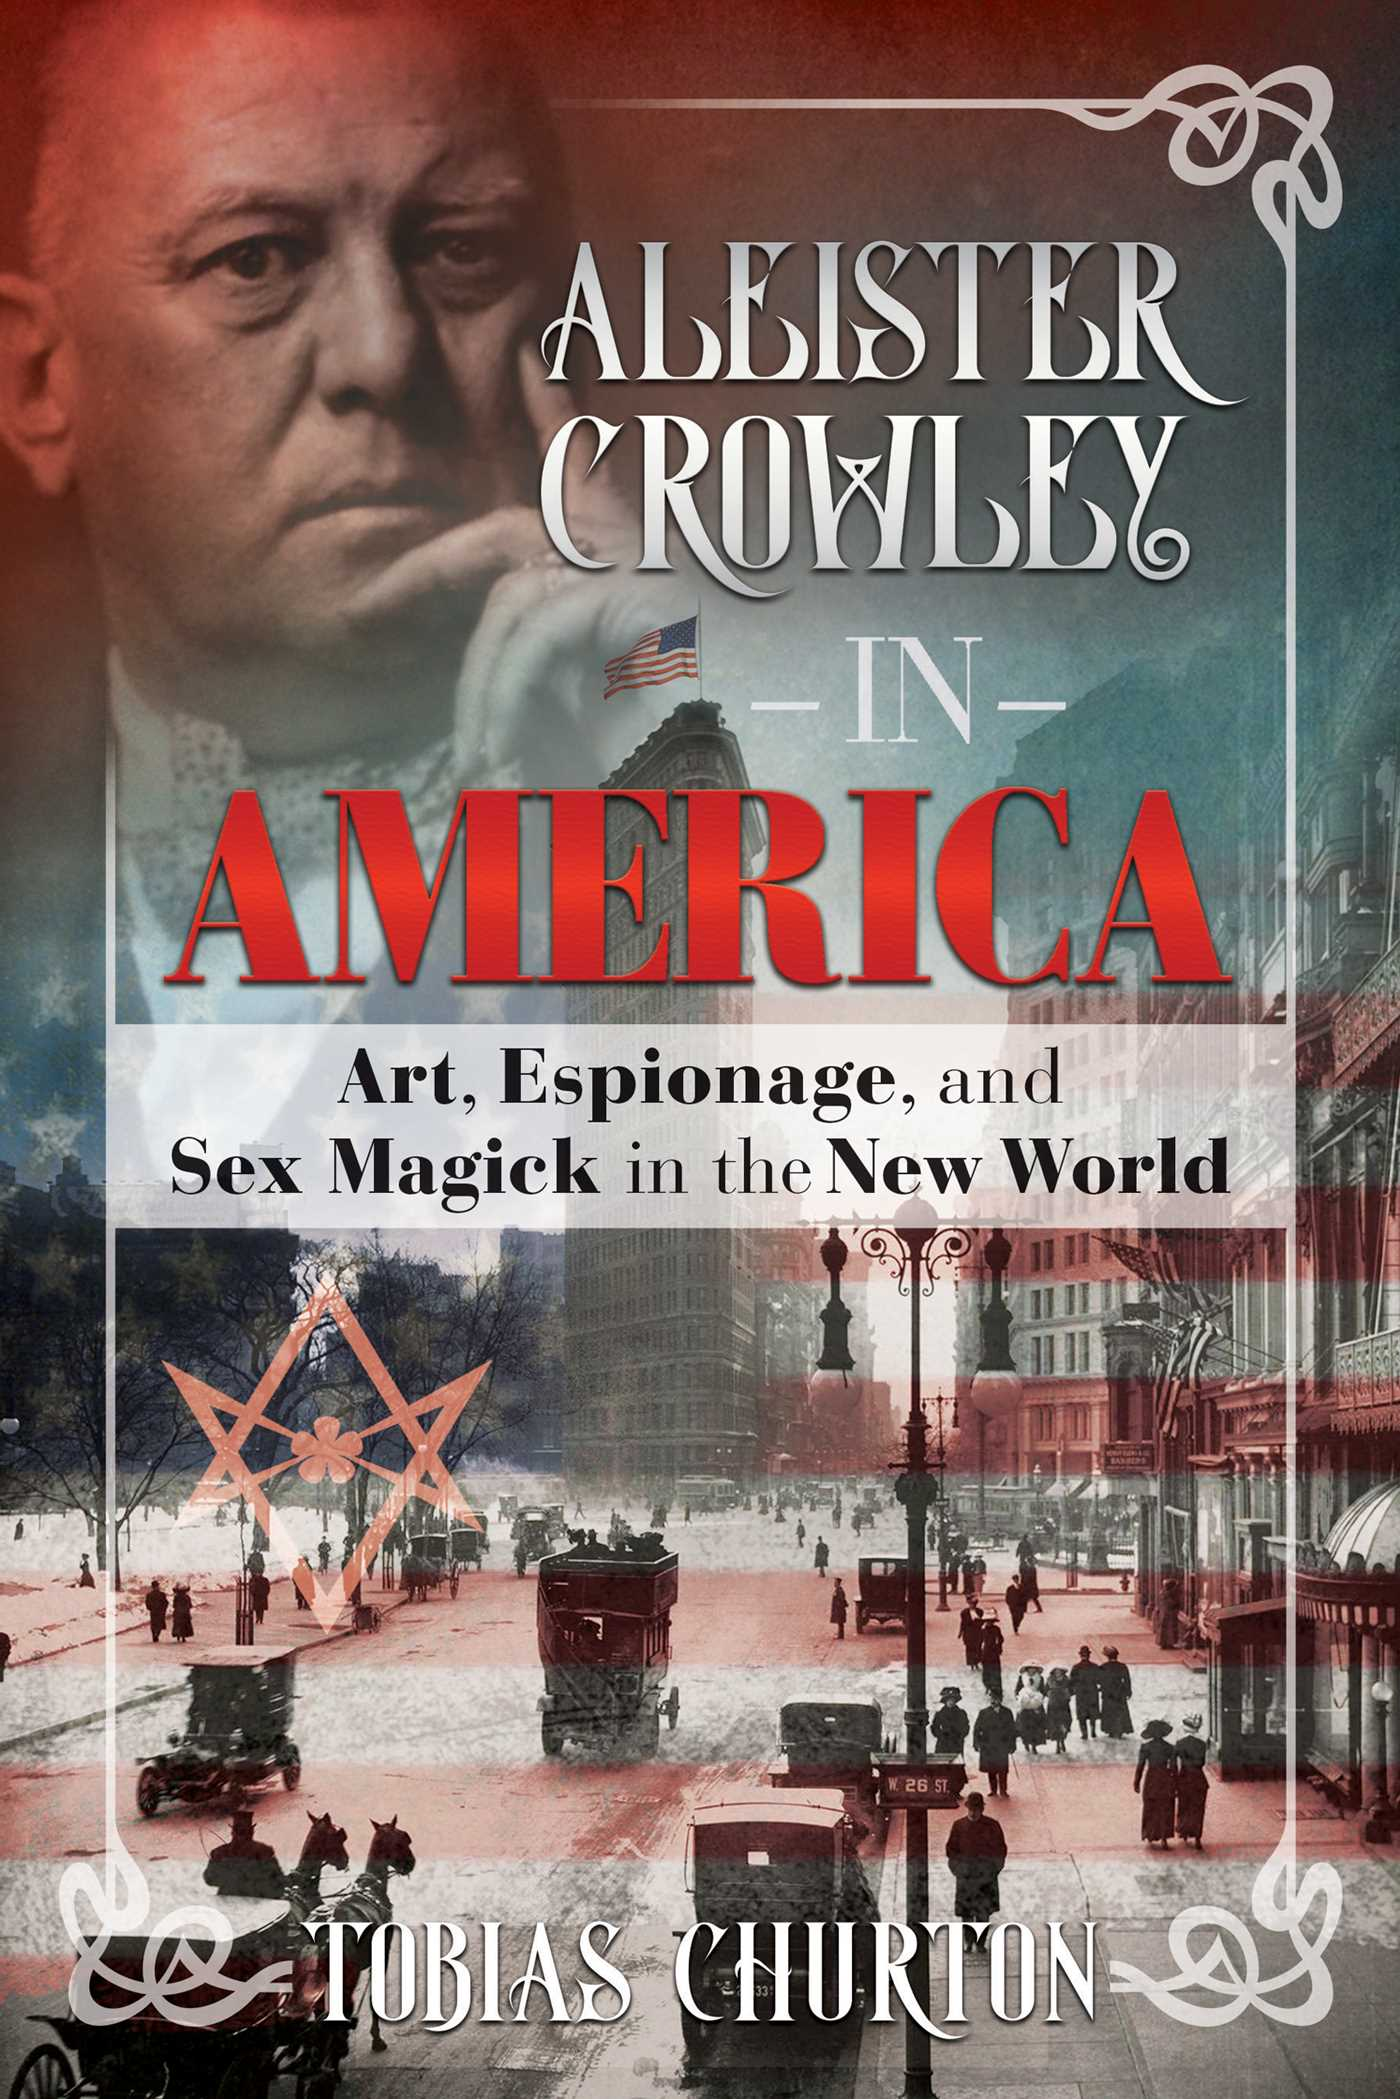 Aleister crowley in america 9781620556313 hr